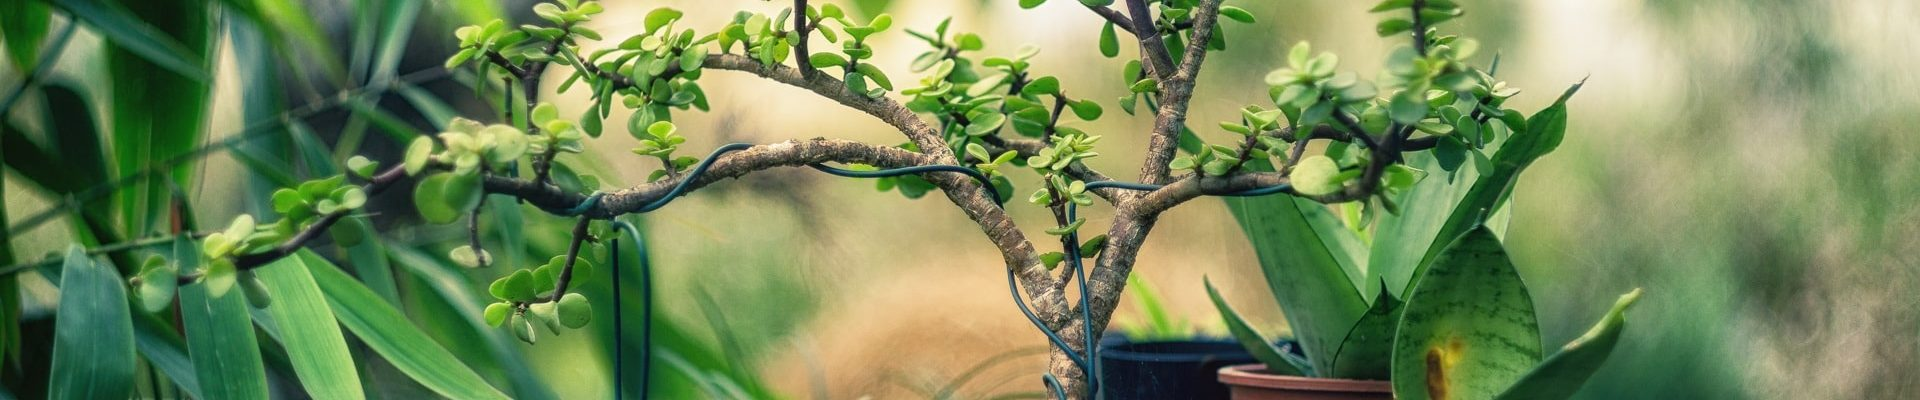 Bonsai al chiuso e bonsai all'aperto quali sono le differenze